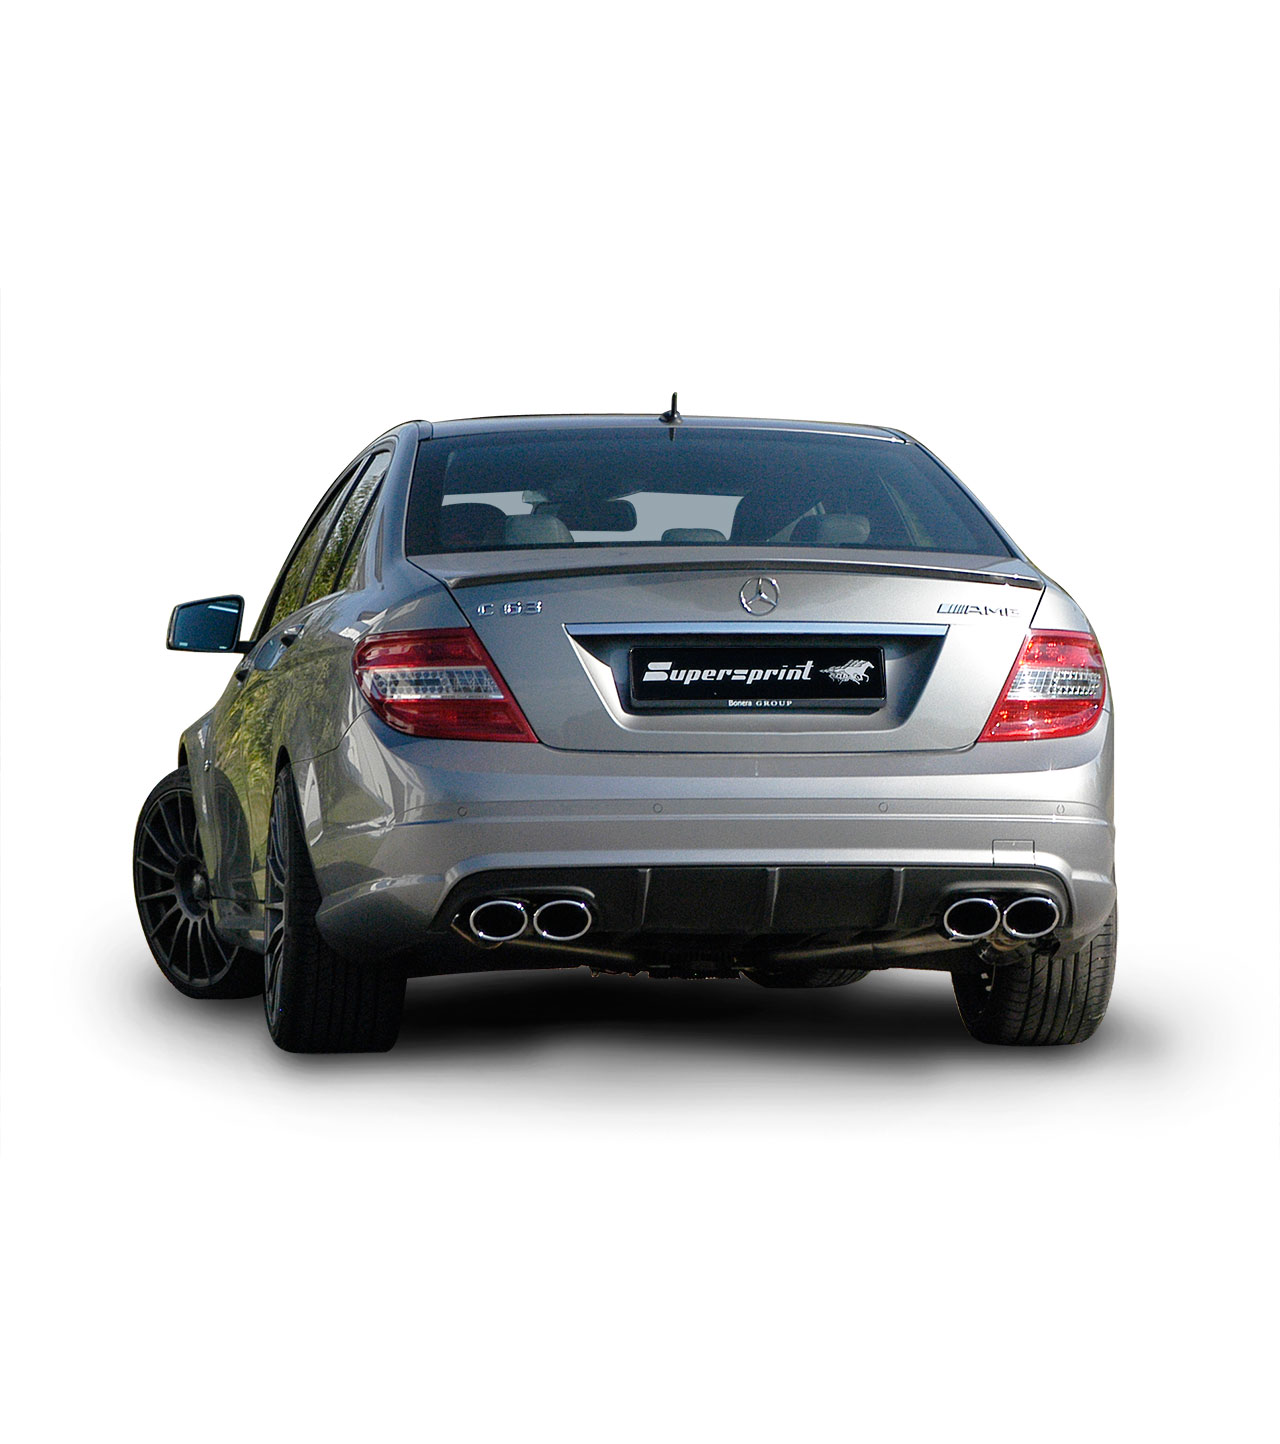 "Mercedes AMG - MERCEDES W204 C63 AMG V8 ""Performance"" (Sedan + S.W. - M156 - 487 Hp) 2010 ->"